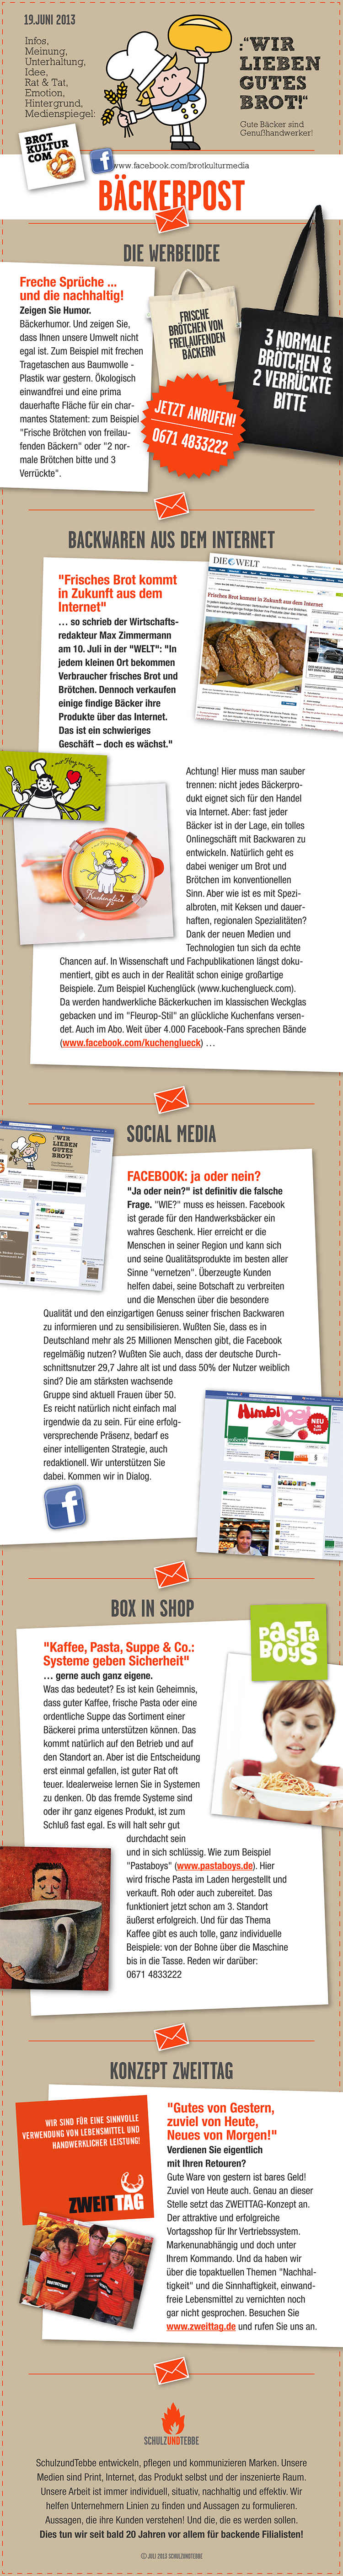 20130717_SchulzundTebbe_eMailing-01.png